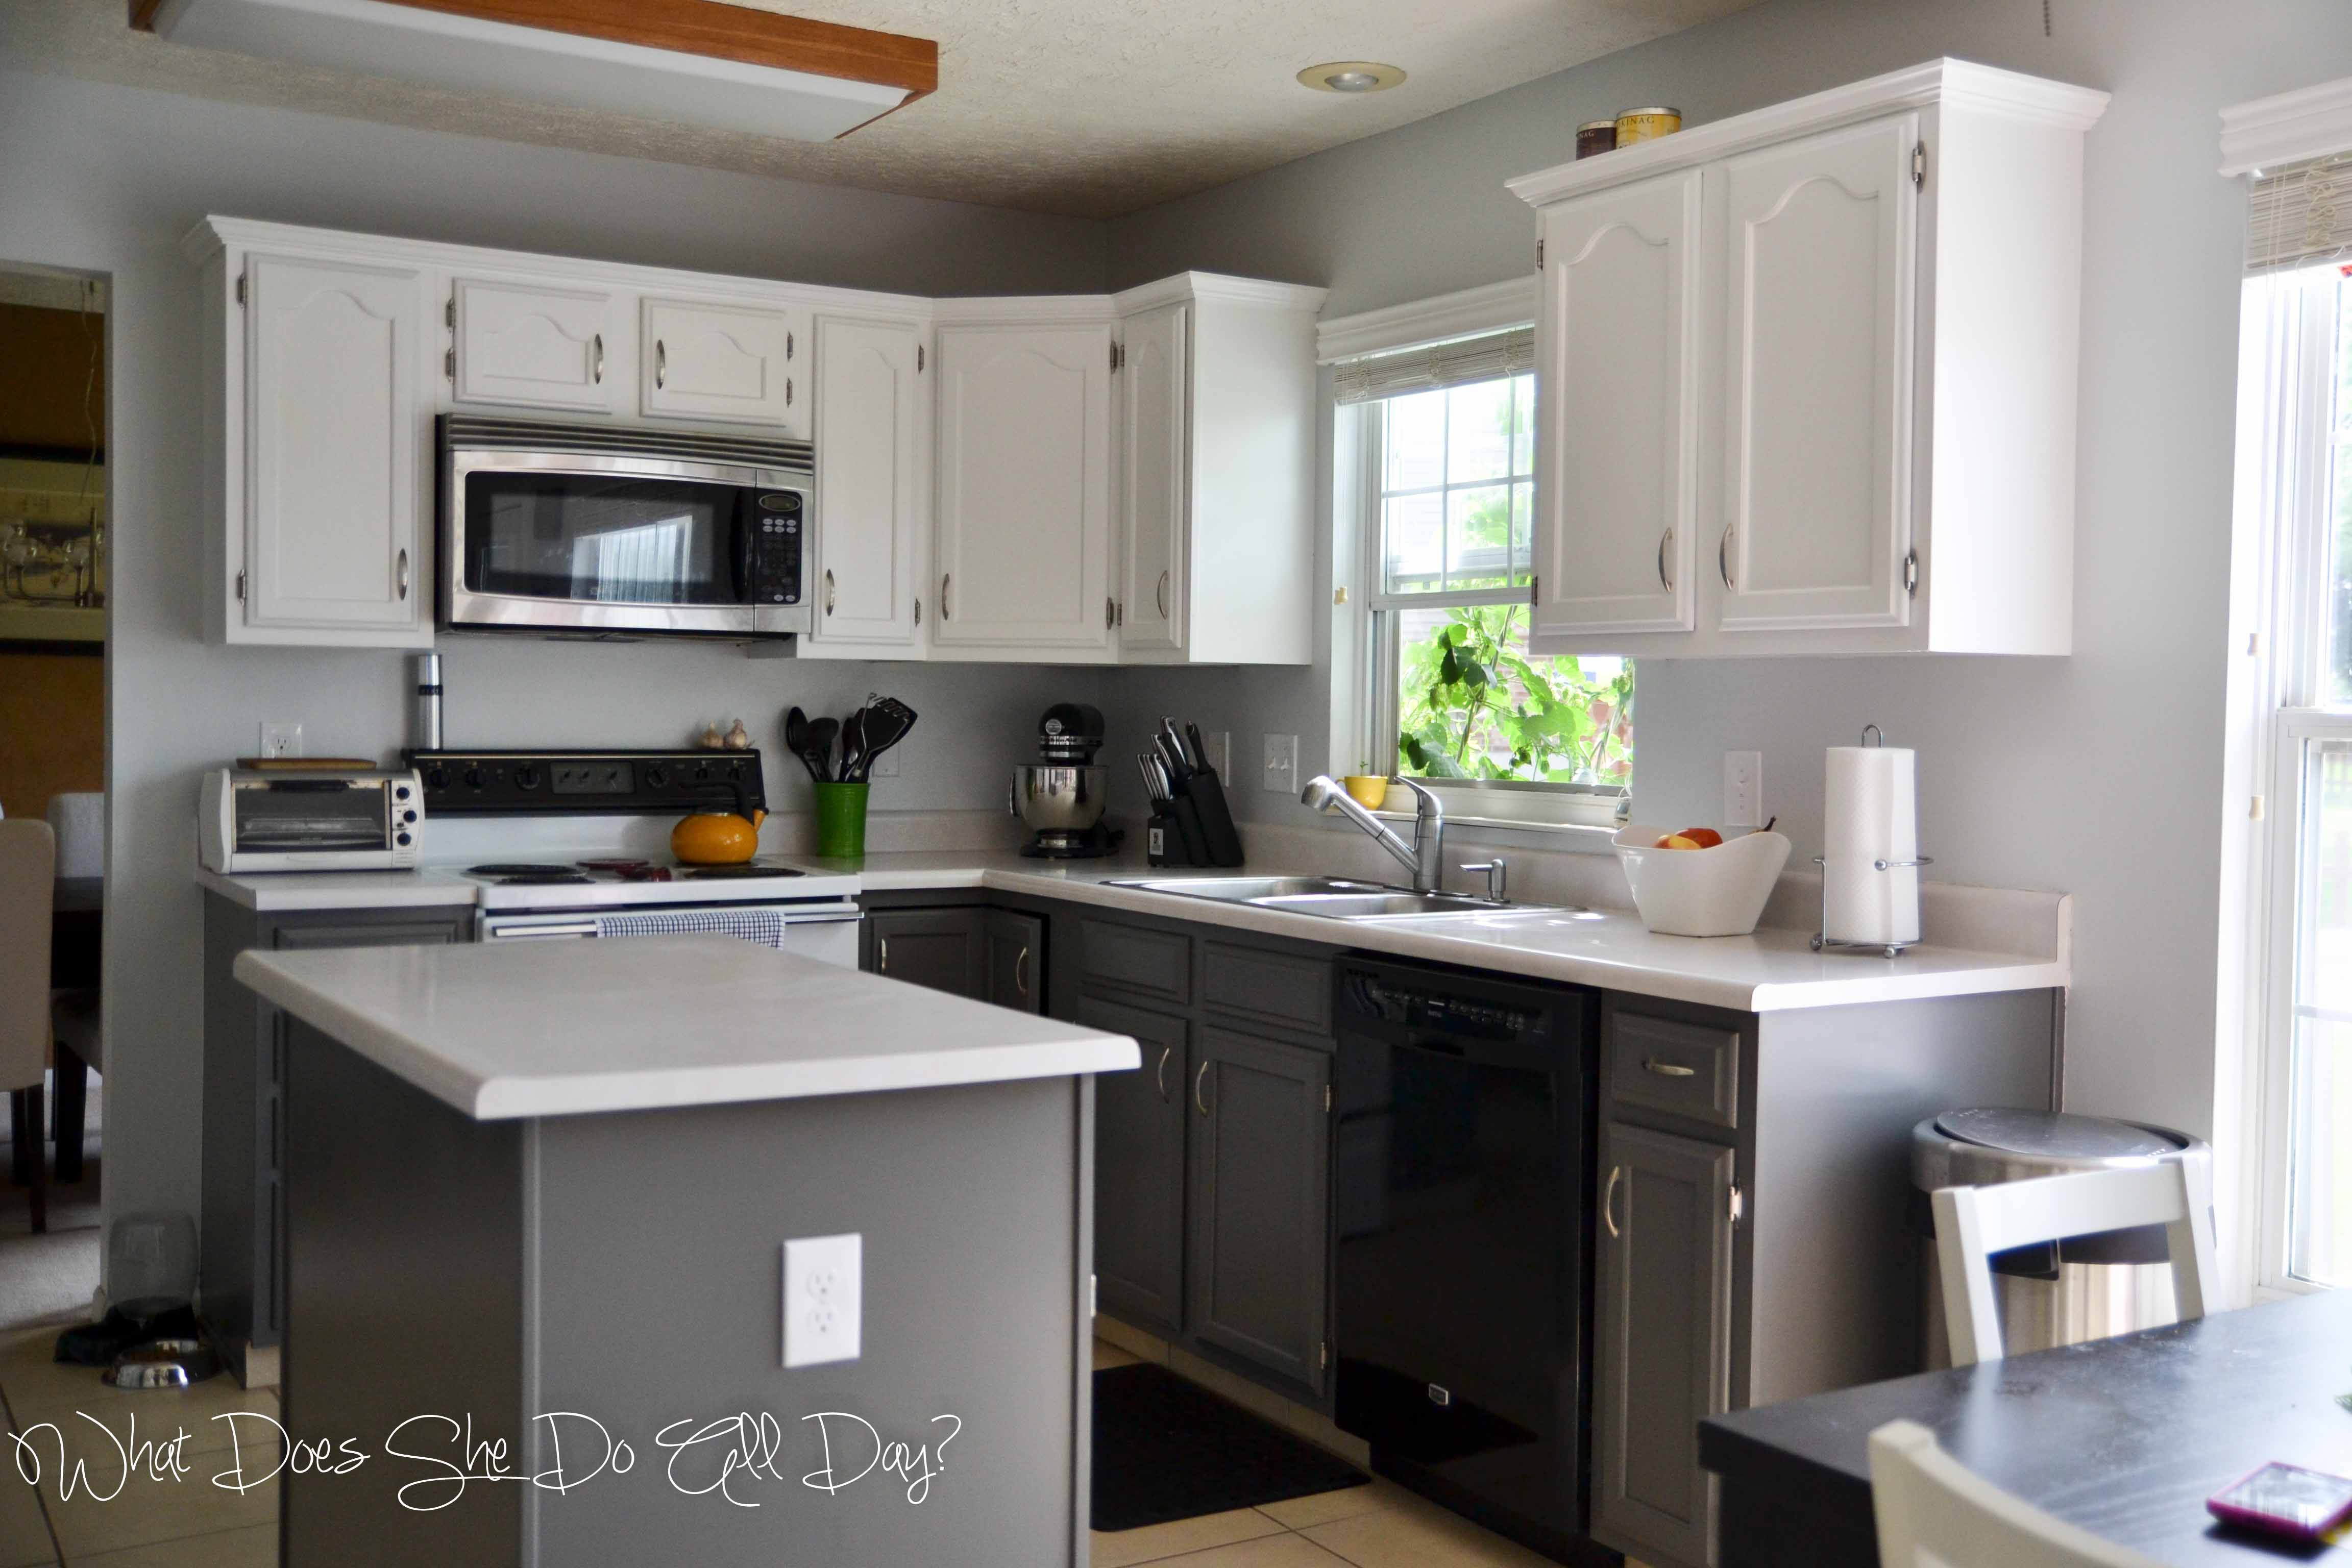 Attractive Kitchen After Painted Cabinets Grey And White Diy Ideas For. Diy Paint  Kitchen Cabinets. Idea